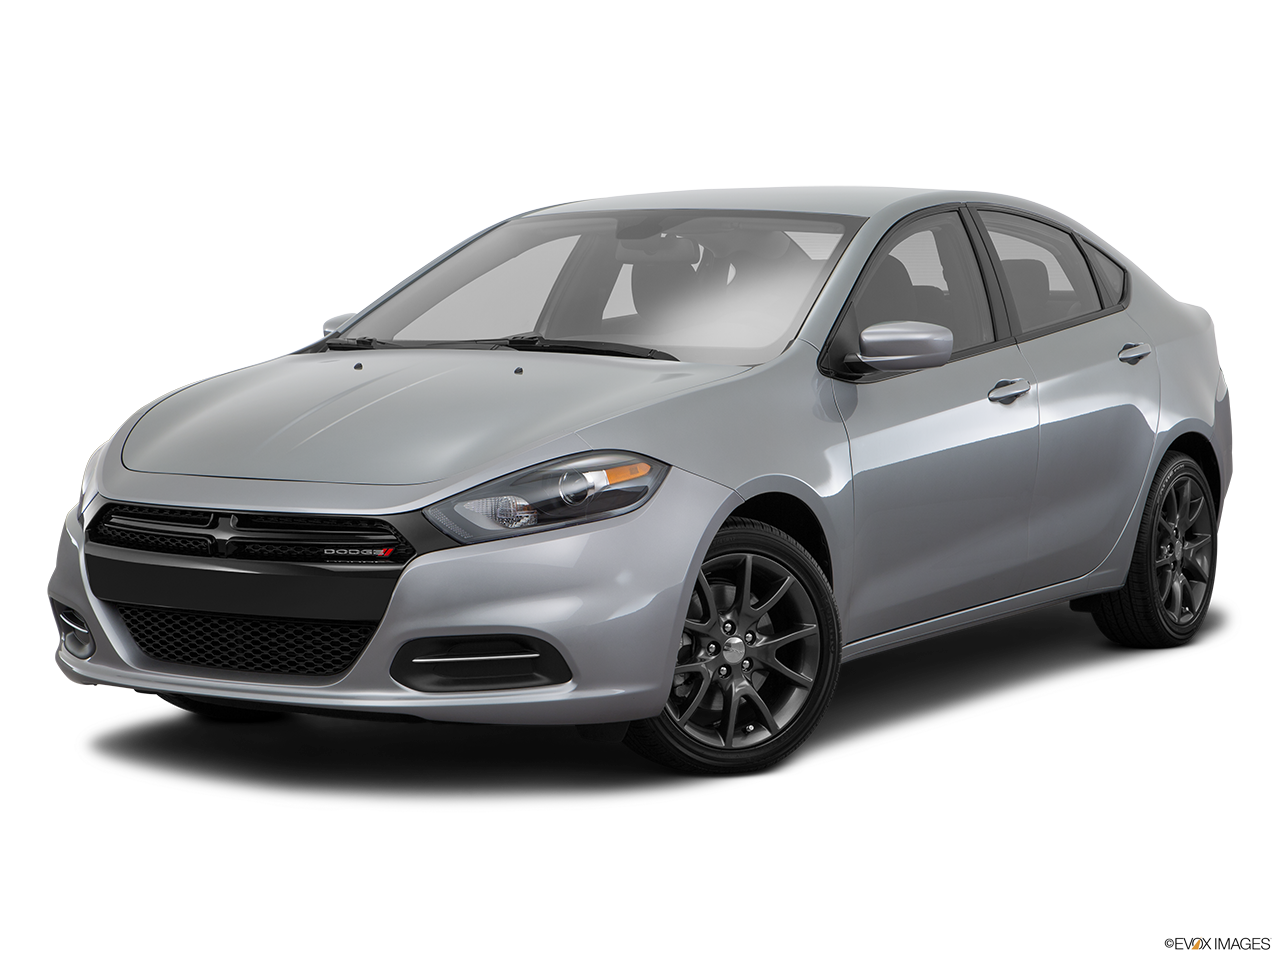 Test Drive A 2016 Dodge Dart at Carl Burger Dodge Chrysler Jeep Ram World in La Mesa